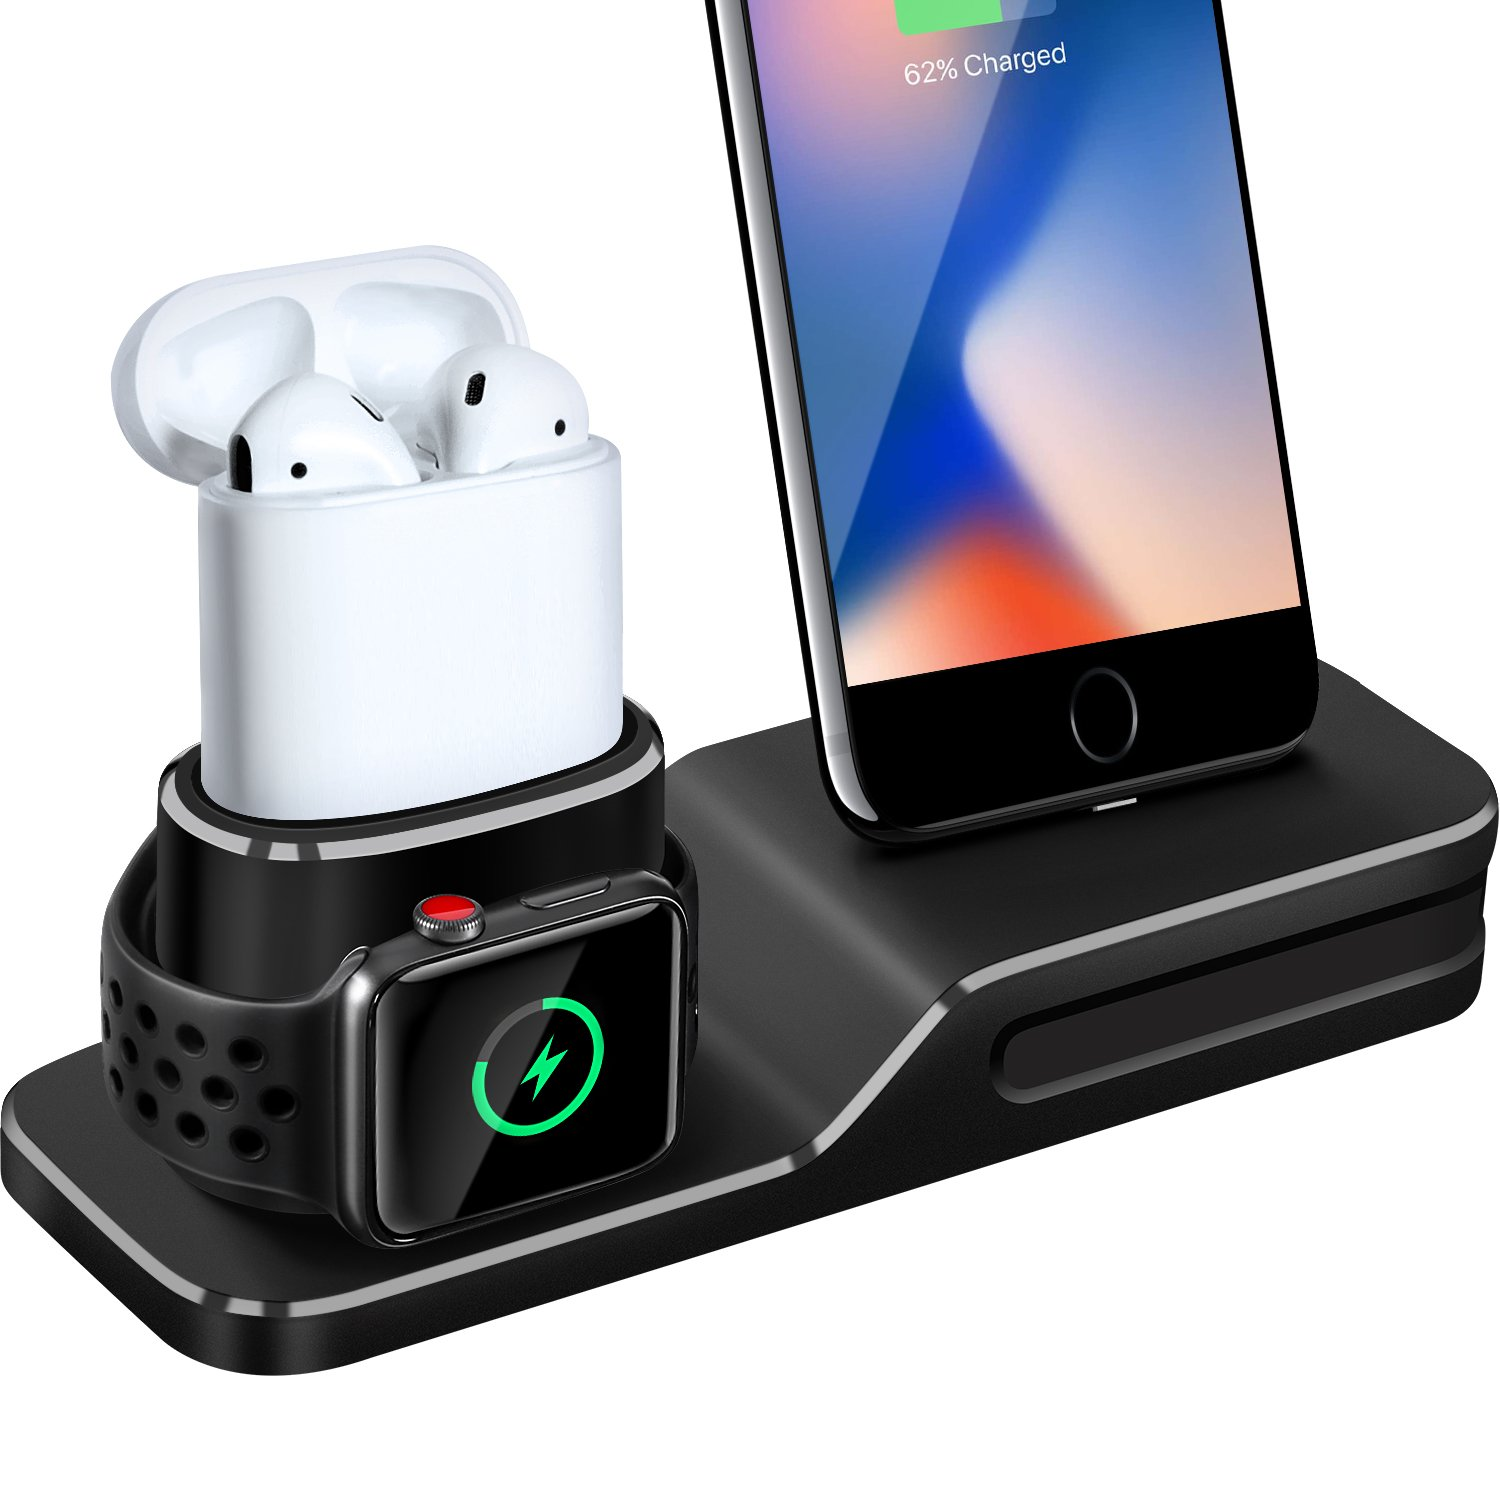 Charging Stand Compatible with Apple Watch, 3 in 1 Charging Station Silicone Compatible with Apple Watch Series 1/2/3/4, Airpods, iPhone Xs/Xs Max/Xr/X/8/8 Plus/7/7 Plus/6 (Not Include Cable/Adapter) by Frienda